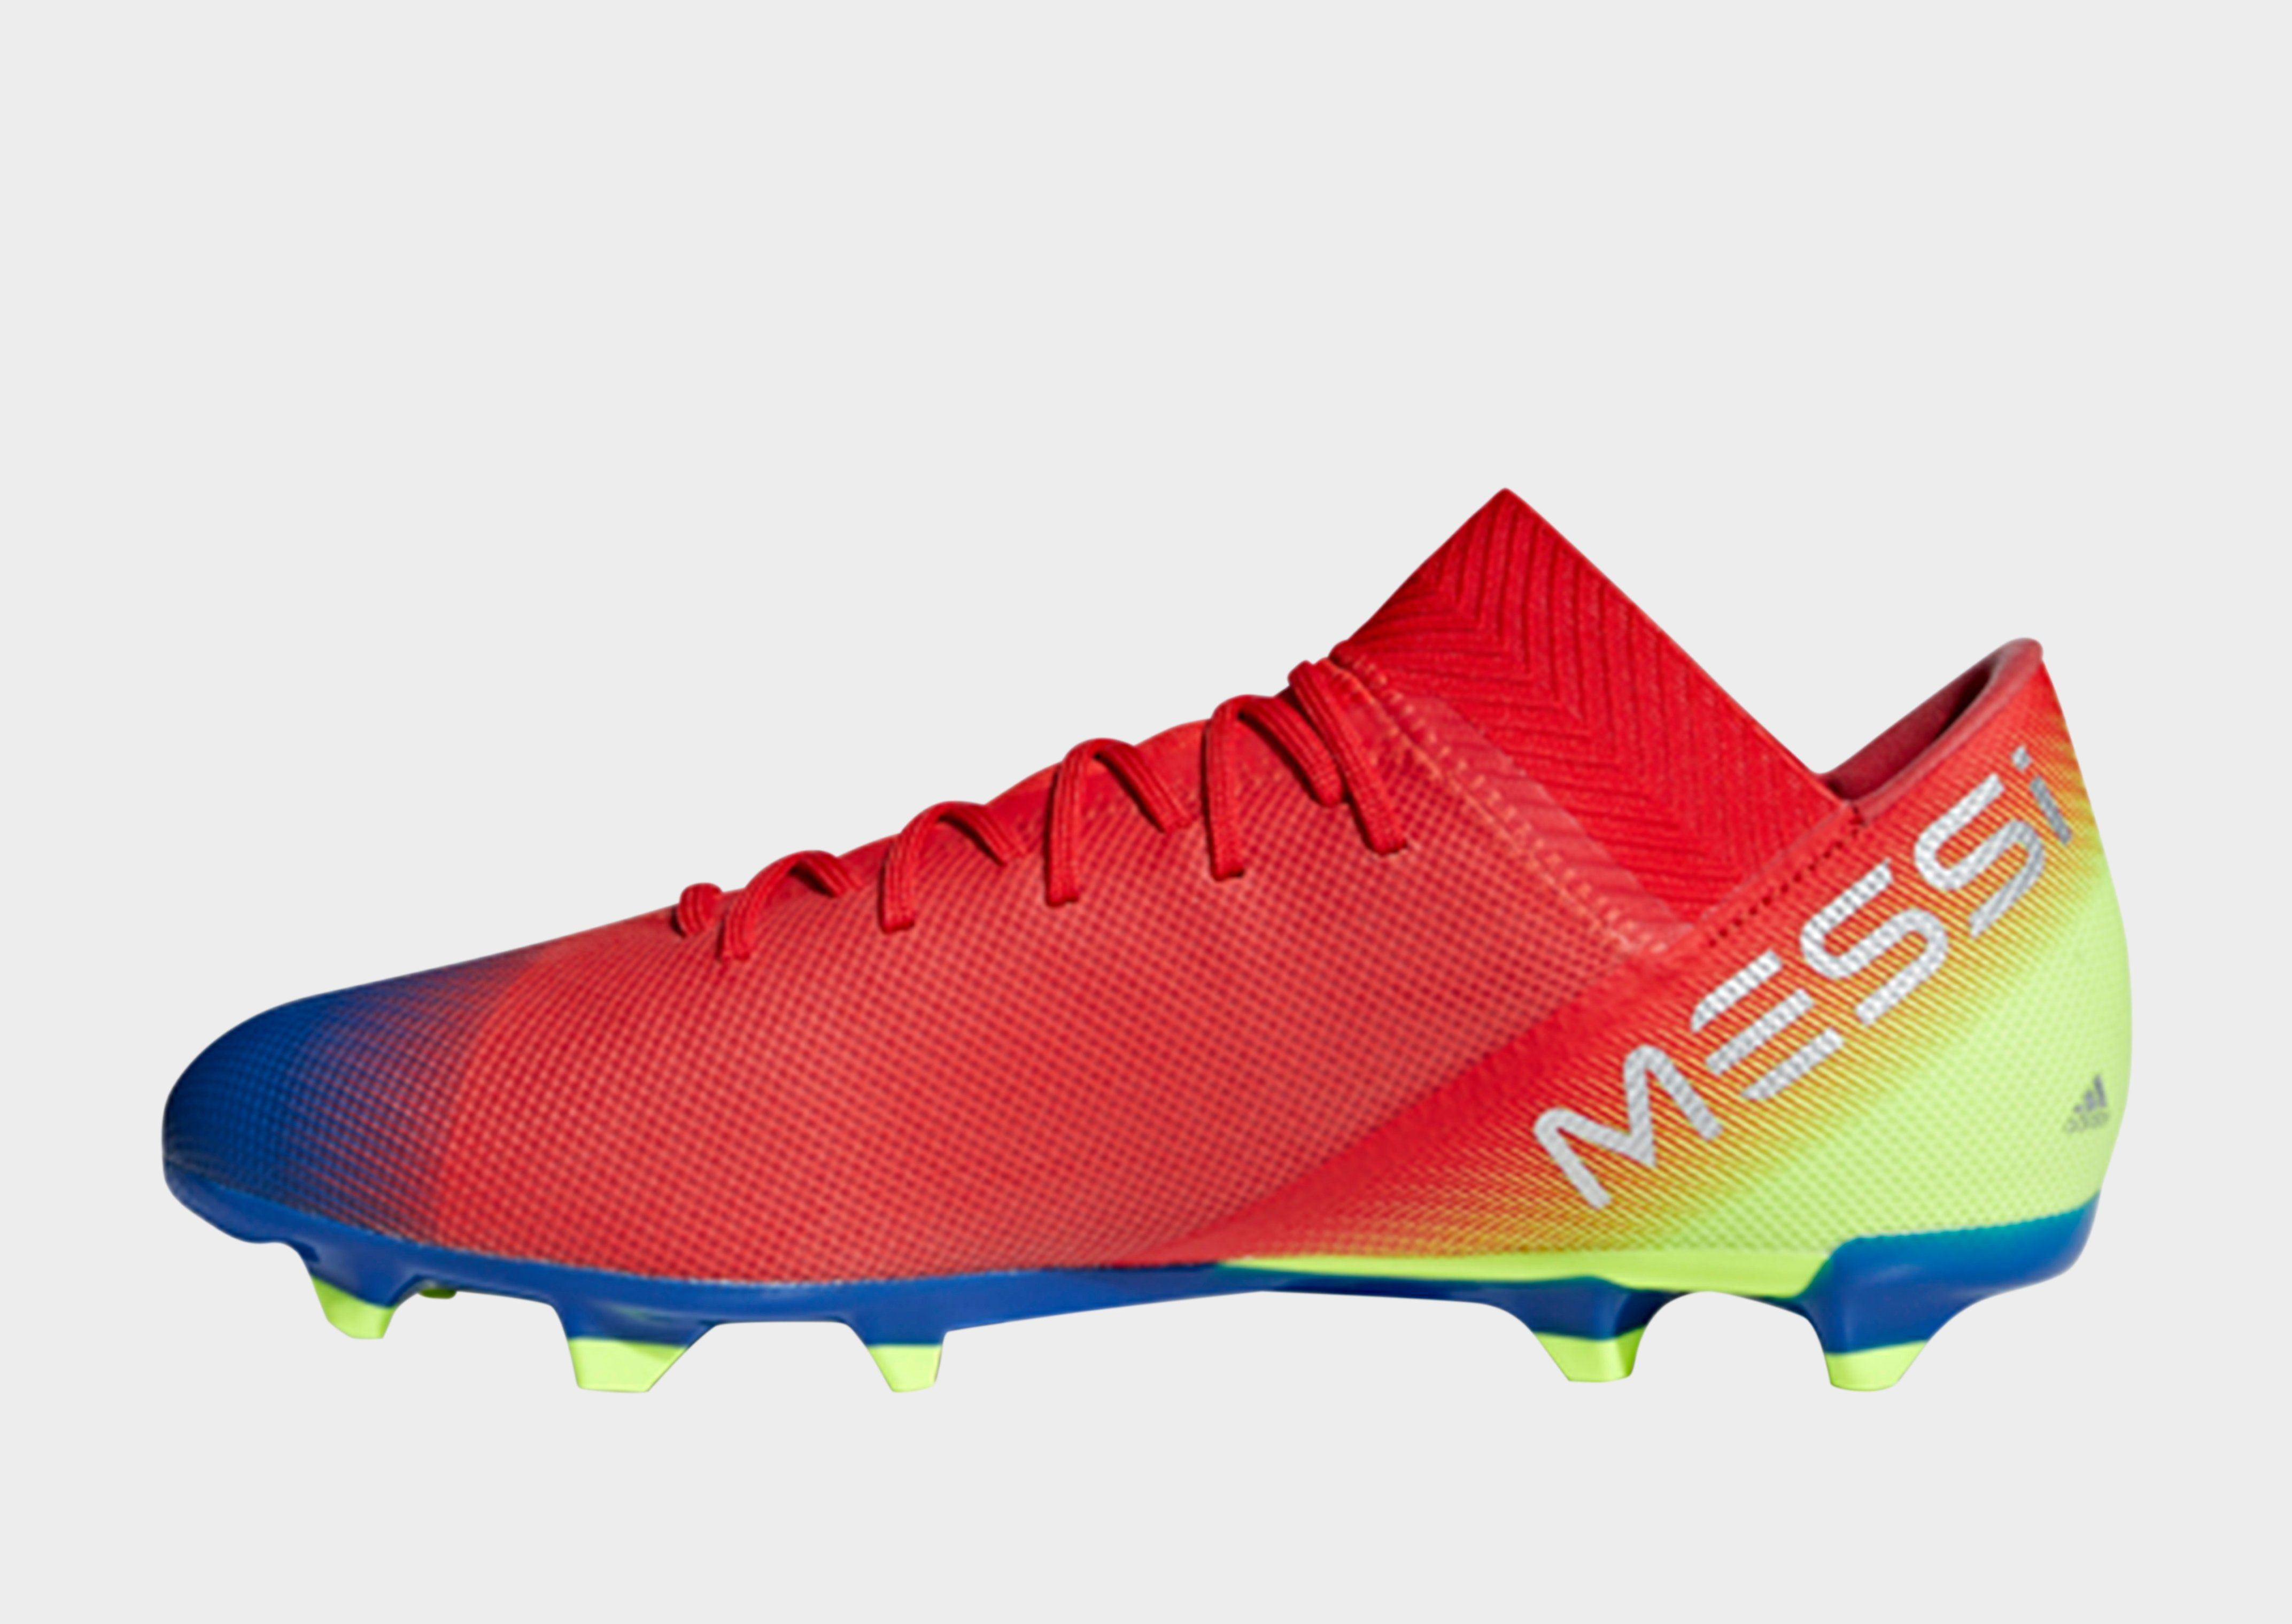 6fc1313c0a01 ADIDAS Nemeziz Messi 18.3 Firm Ground Boots